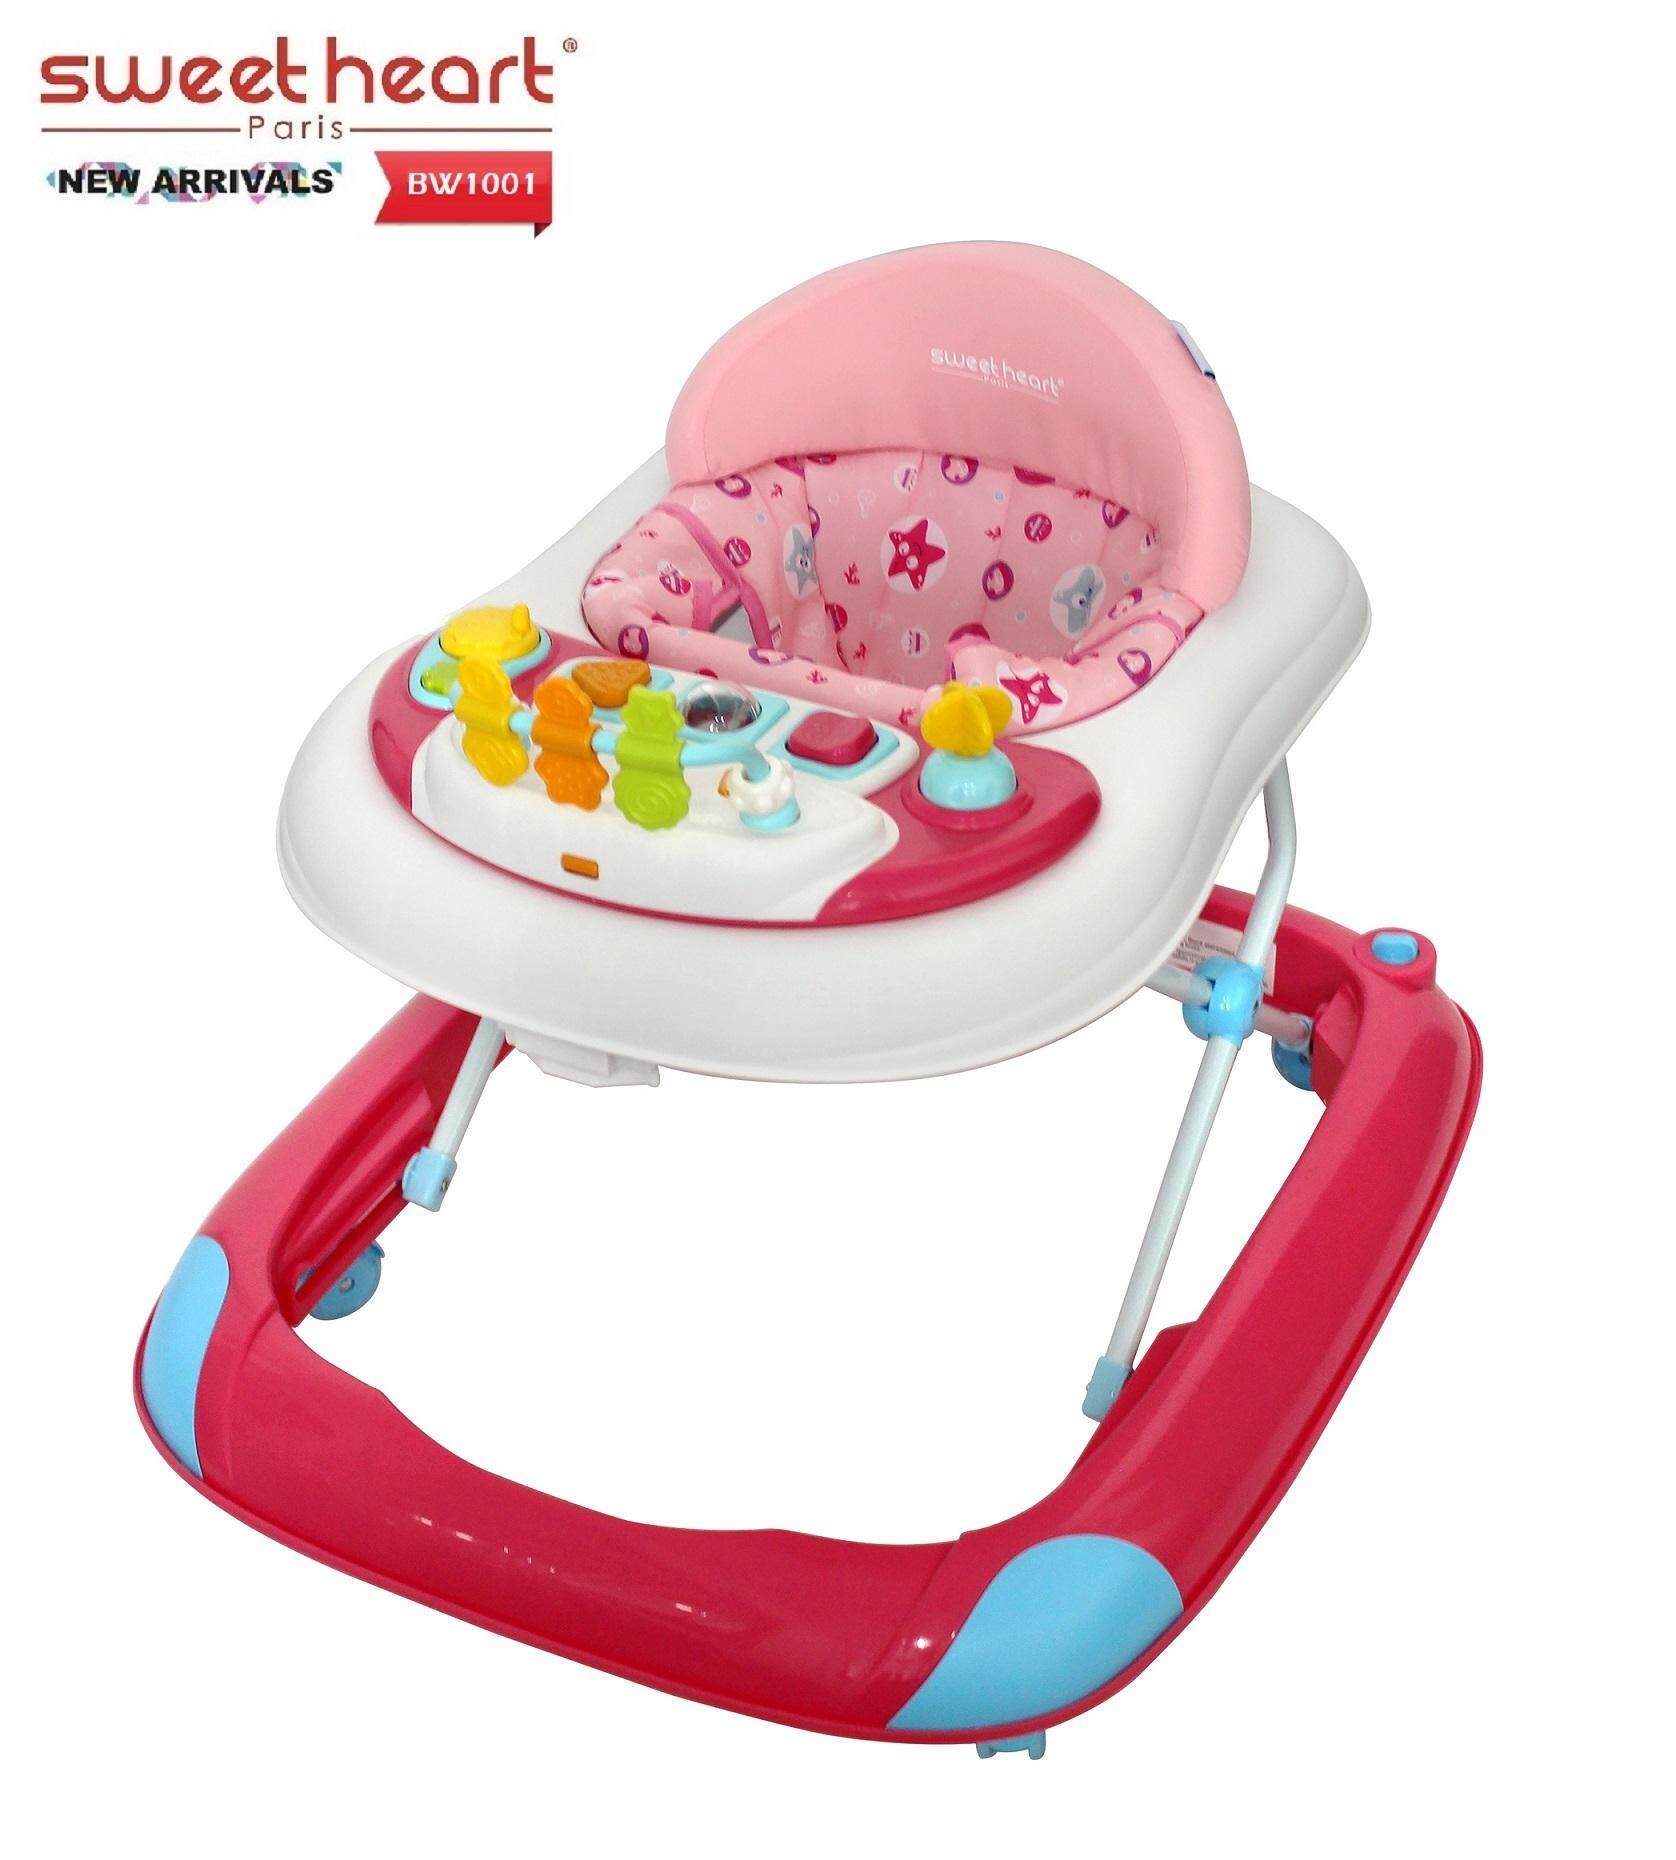 Sweet Heart Paris Baby Walker BW1001 Pink